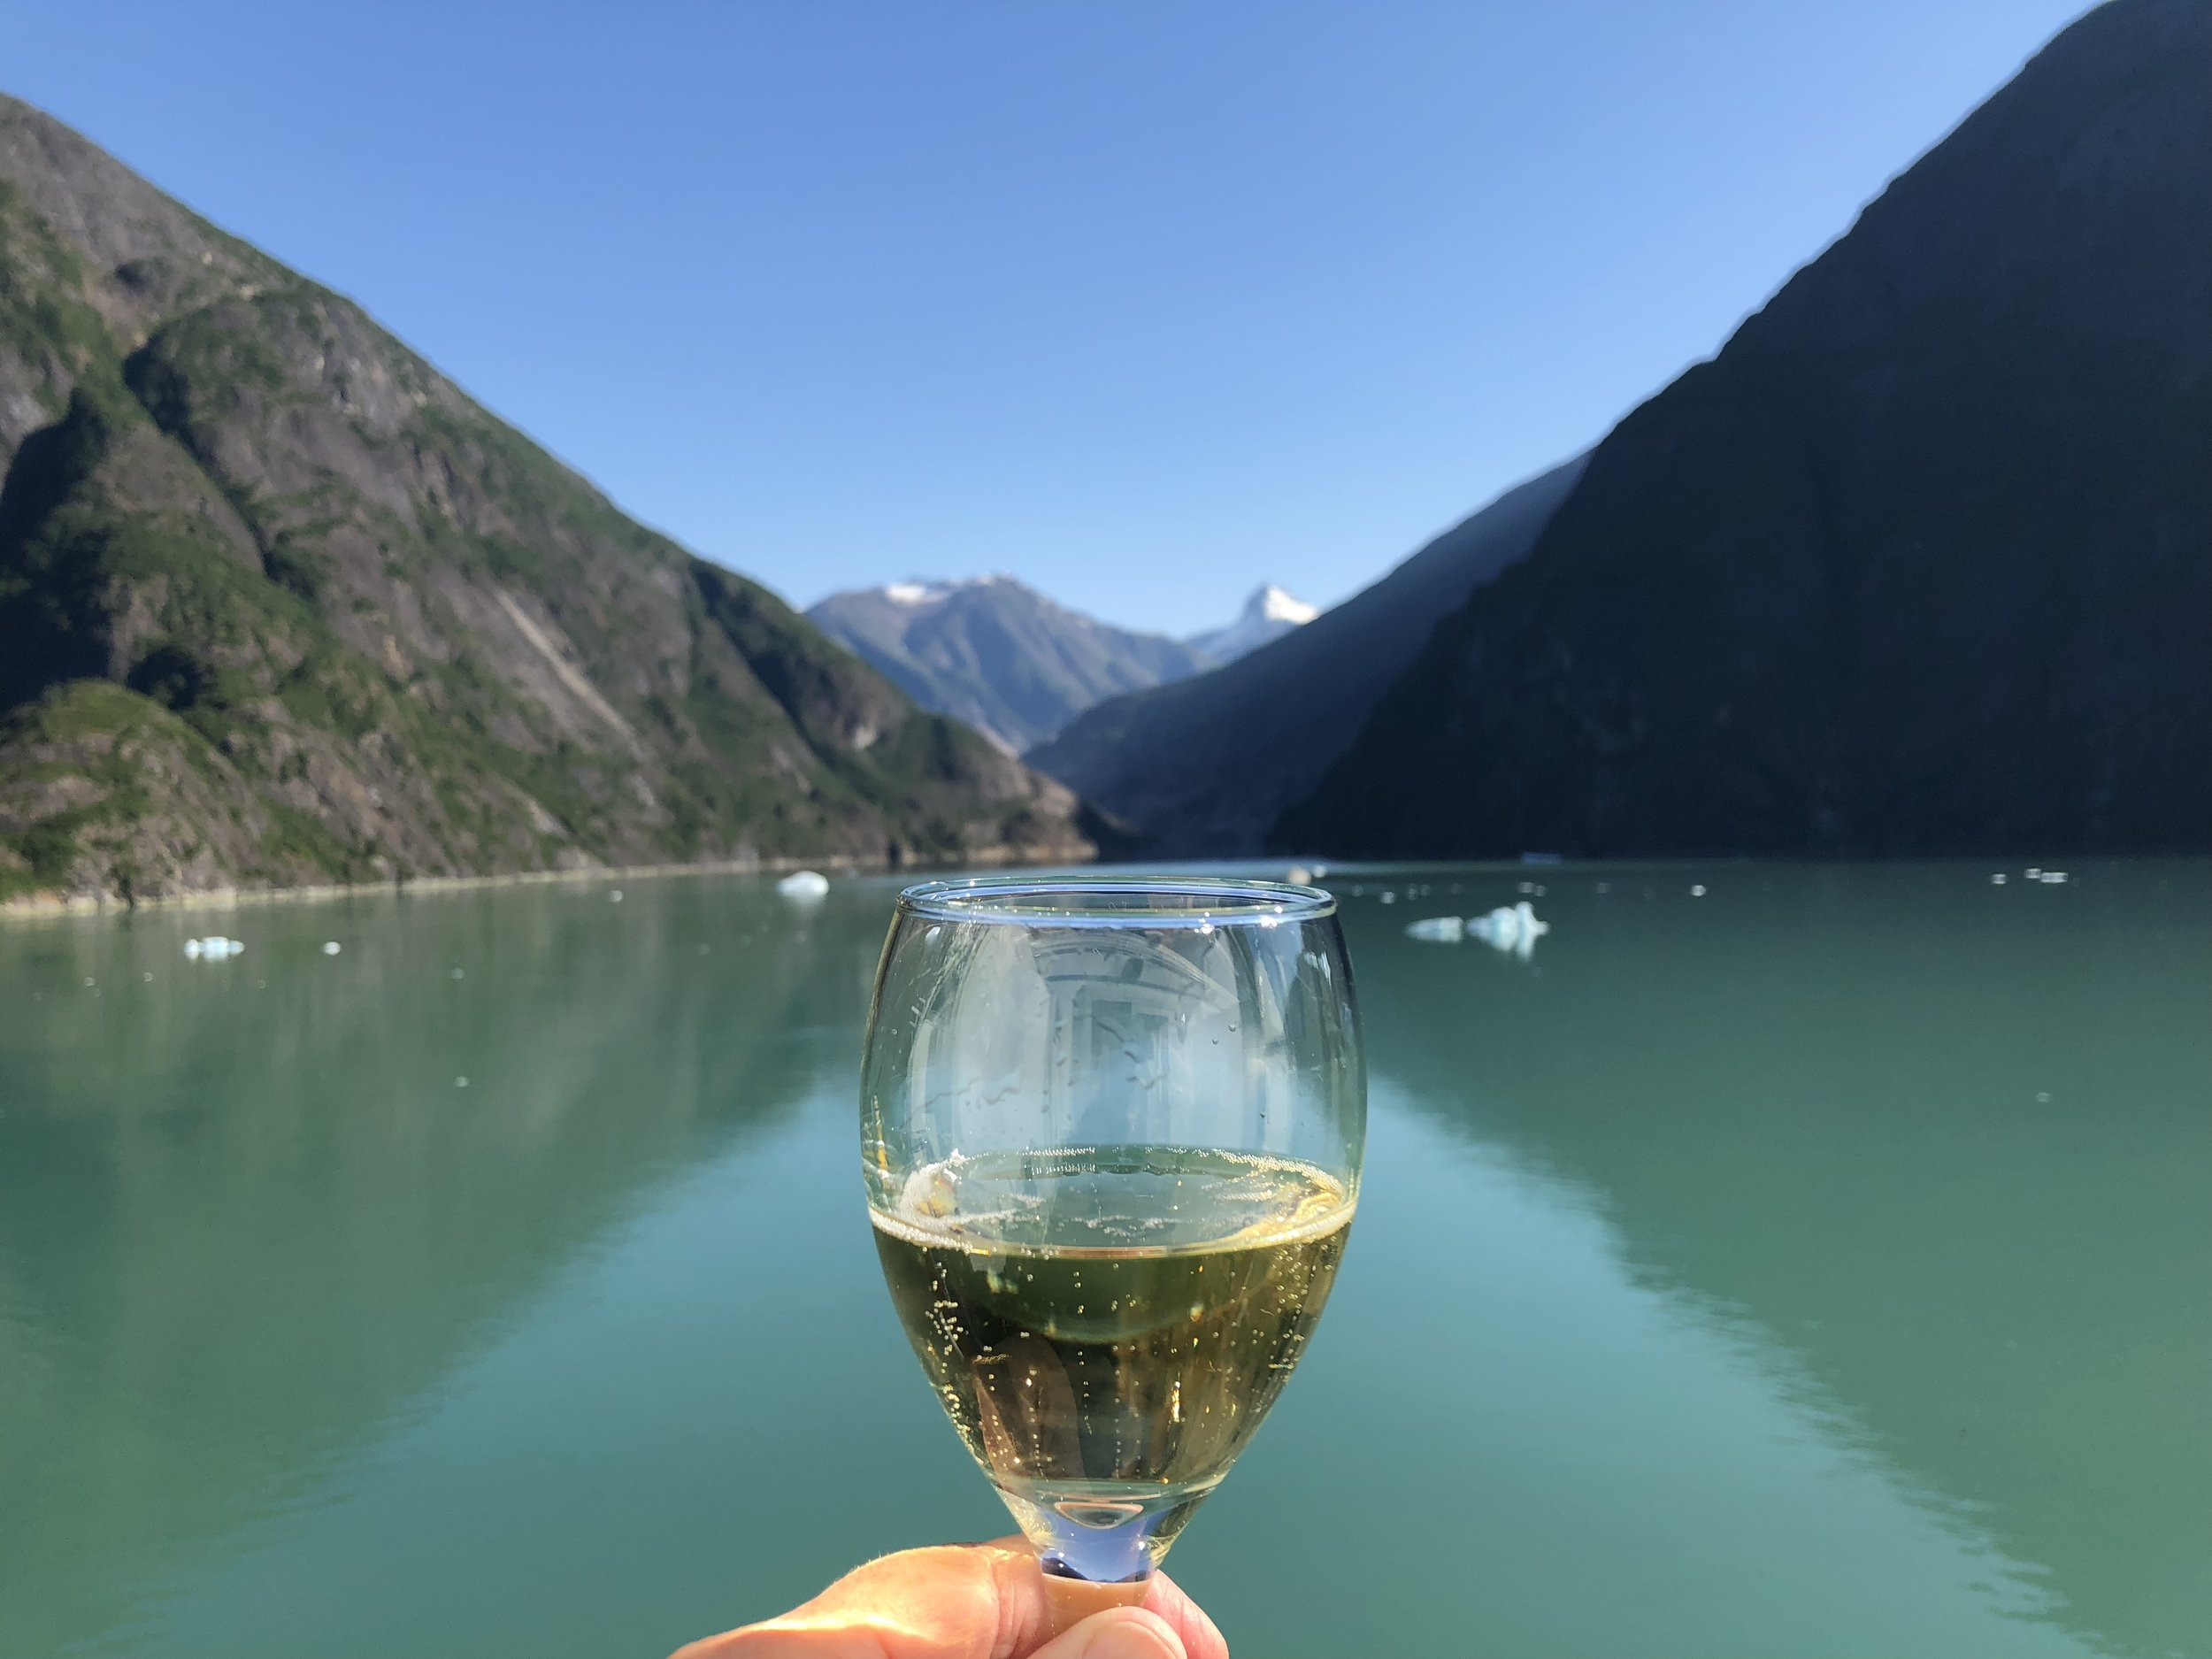 Toasting the Tracy Arm Fjord in Alaska with a 2009 J. Schram Schramsberg sparkling wine